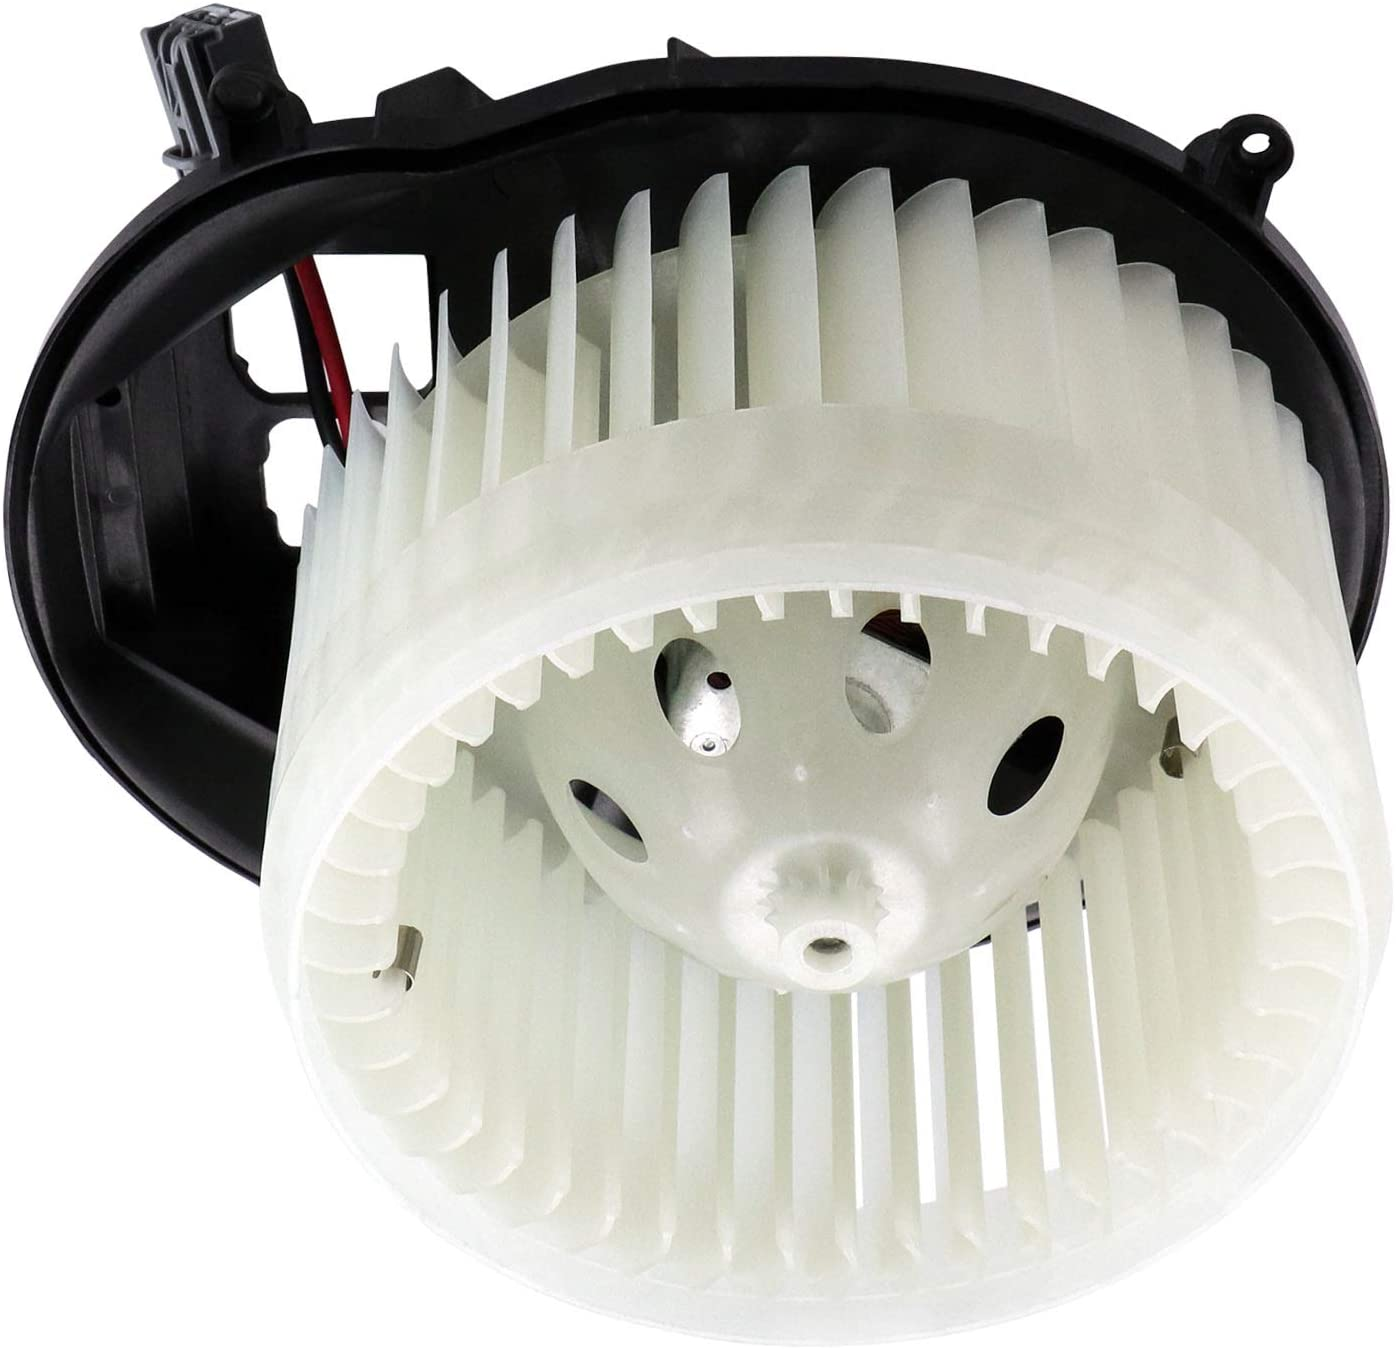 for 03-06 Infiniti Q45 99-07 Volvo S60 S80 V70 HVAC Blower Motor with Fan Replaces 700186 9171479-0